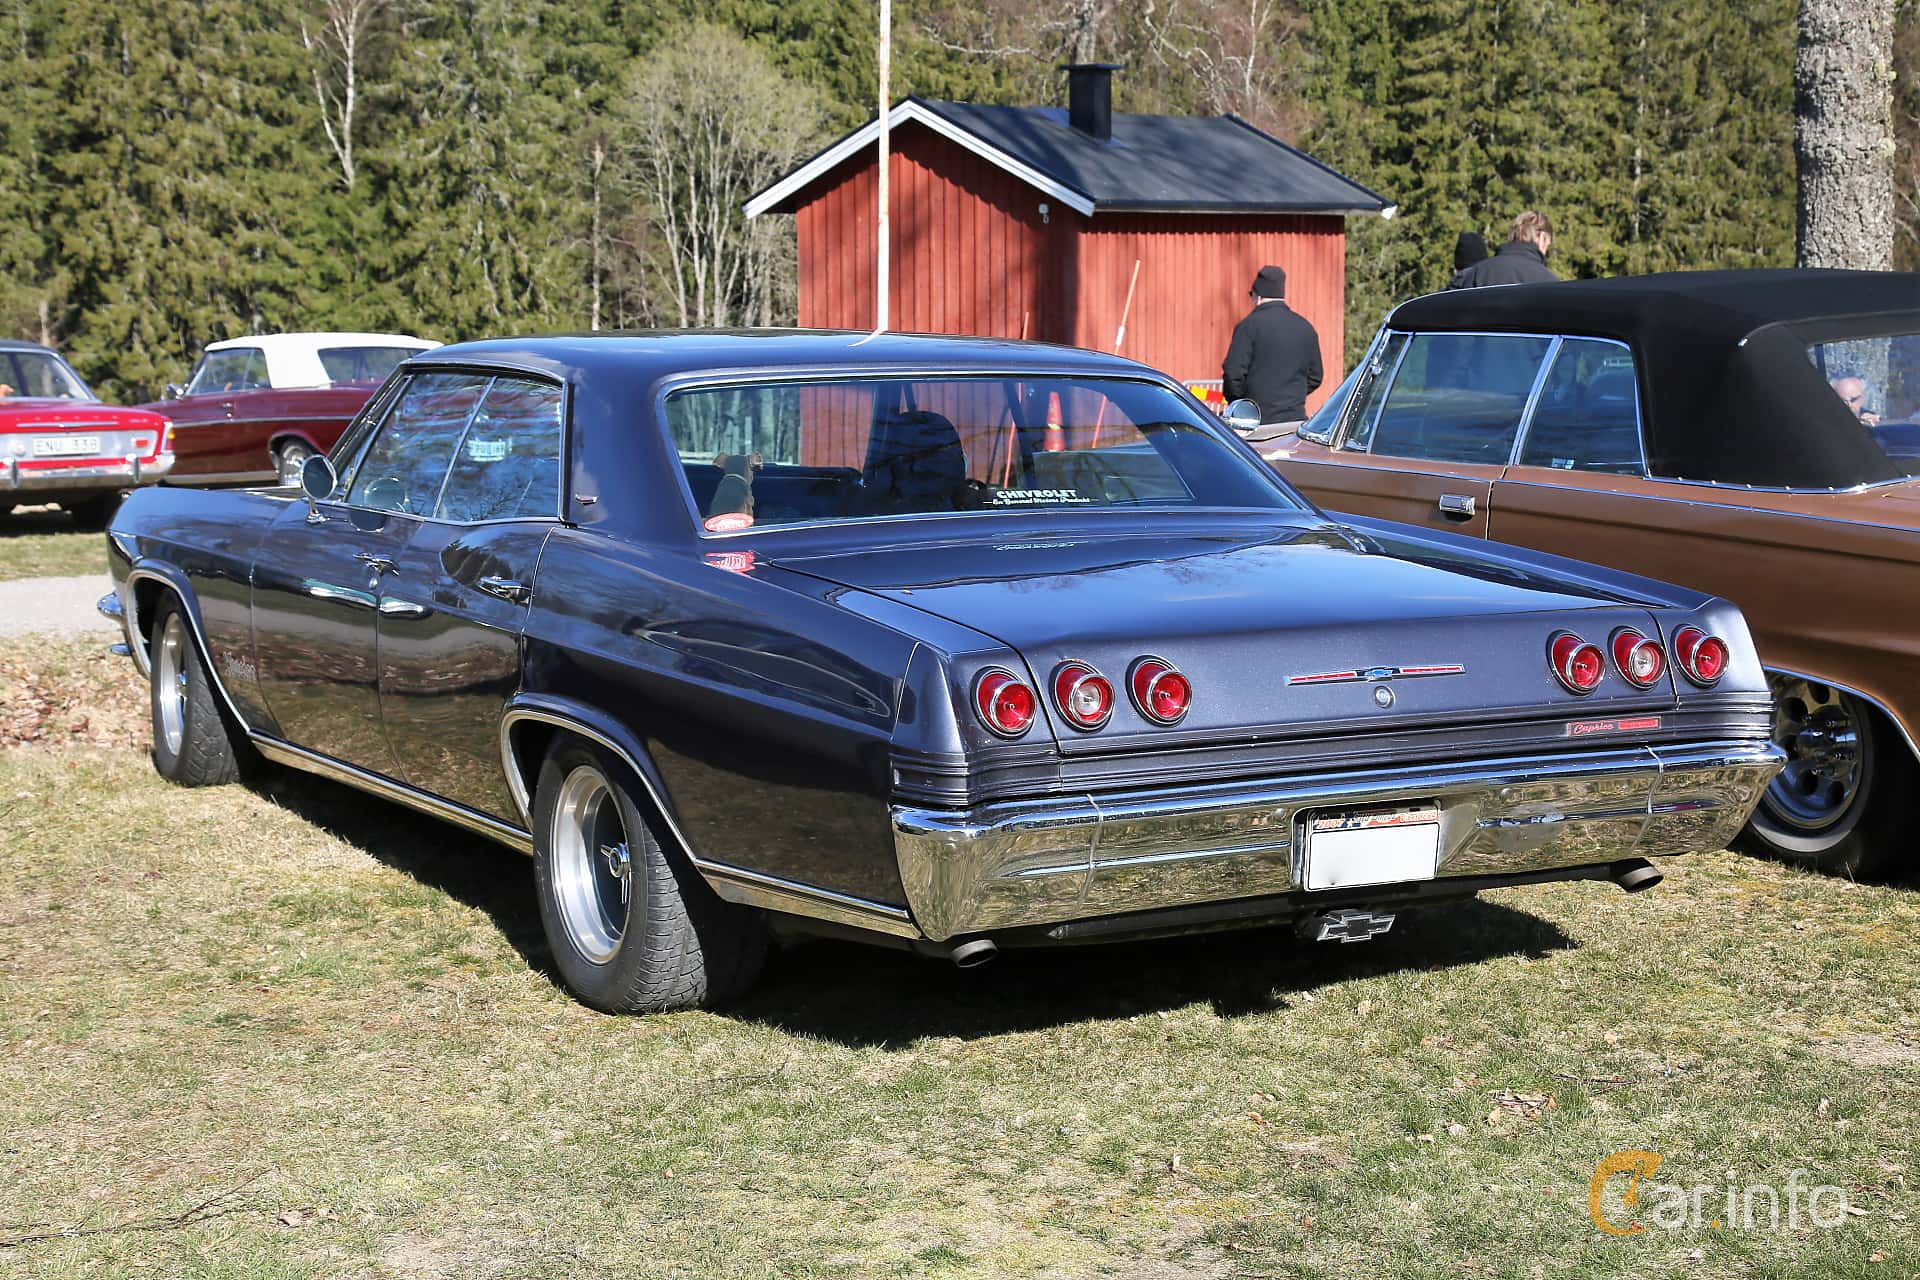 Chevrolet Impala Sport Sedan 6.5 V8 Powerglide, 329hp, 1965 at Uddevalla Veteranbilsmarknad Backamo, Ljungsk 2019